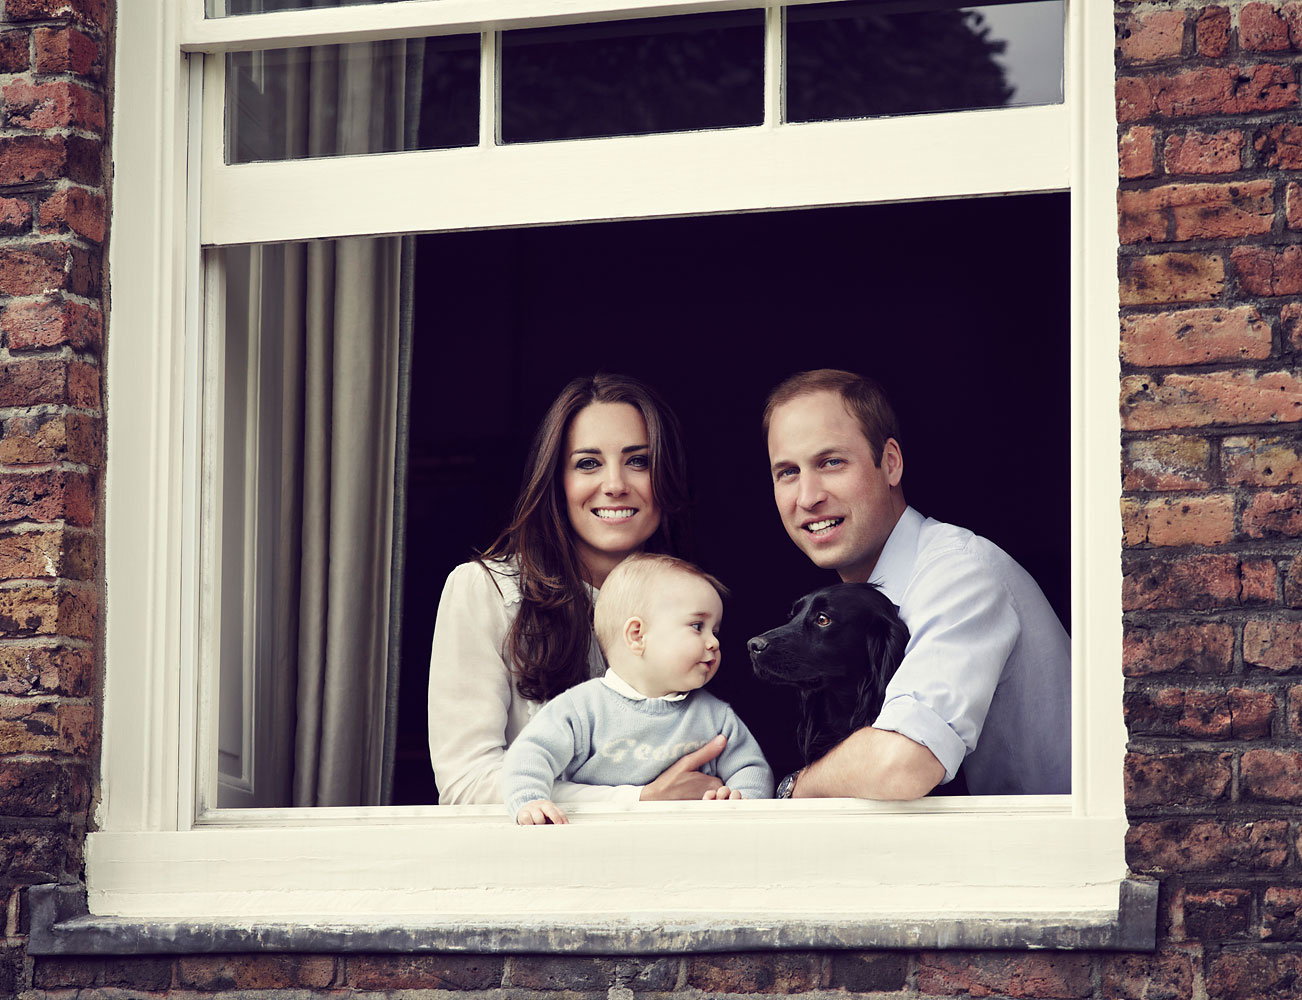 The Duke and Duchess of Cambridge with their son Prince George, photographed at Kensington Palace, March 2014.